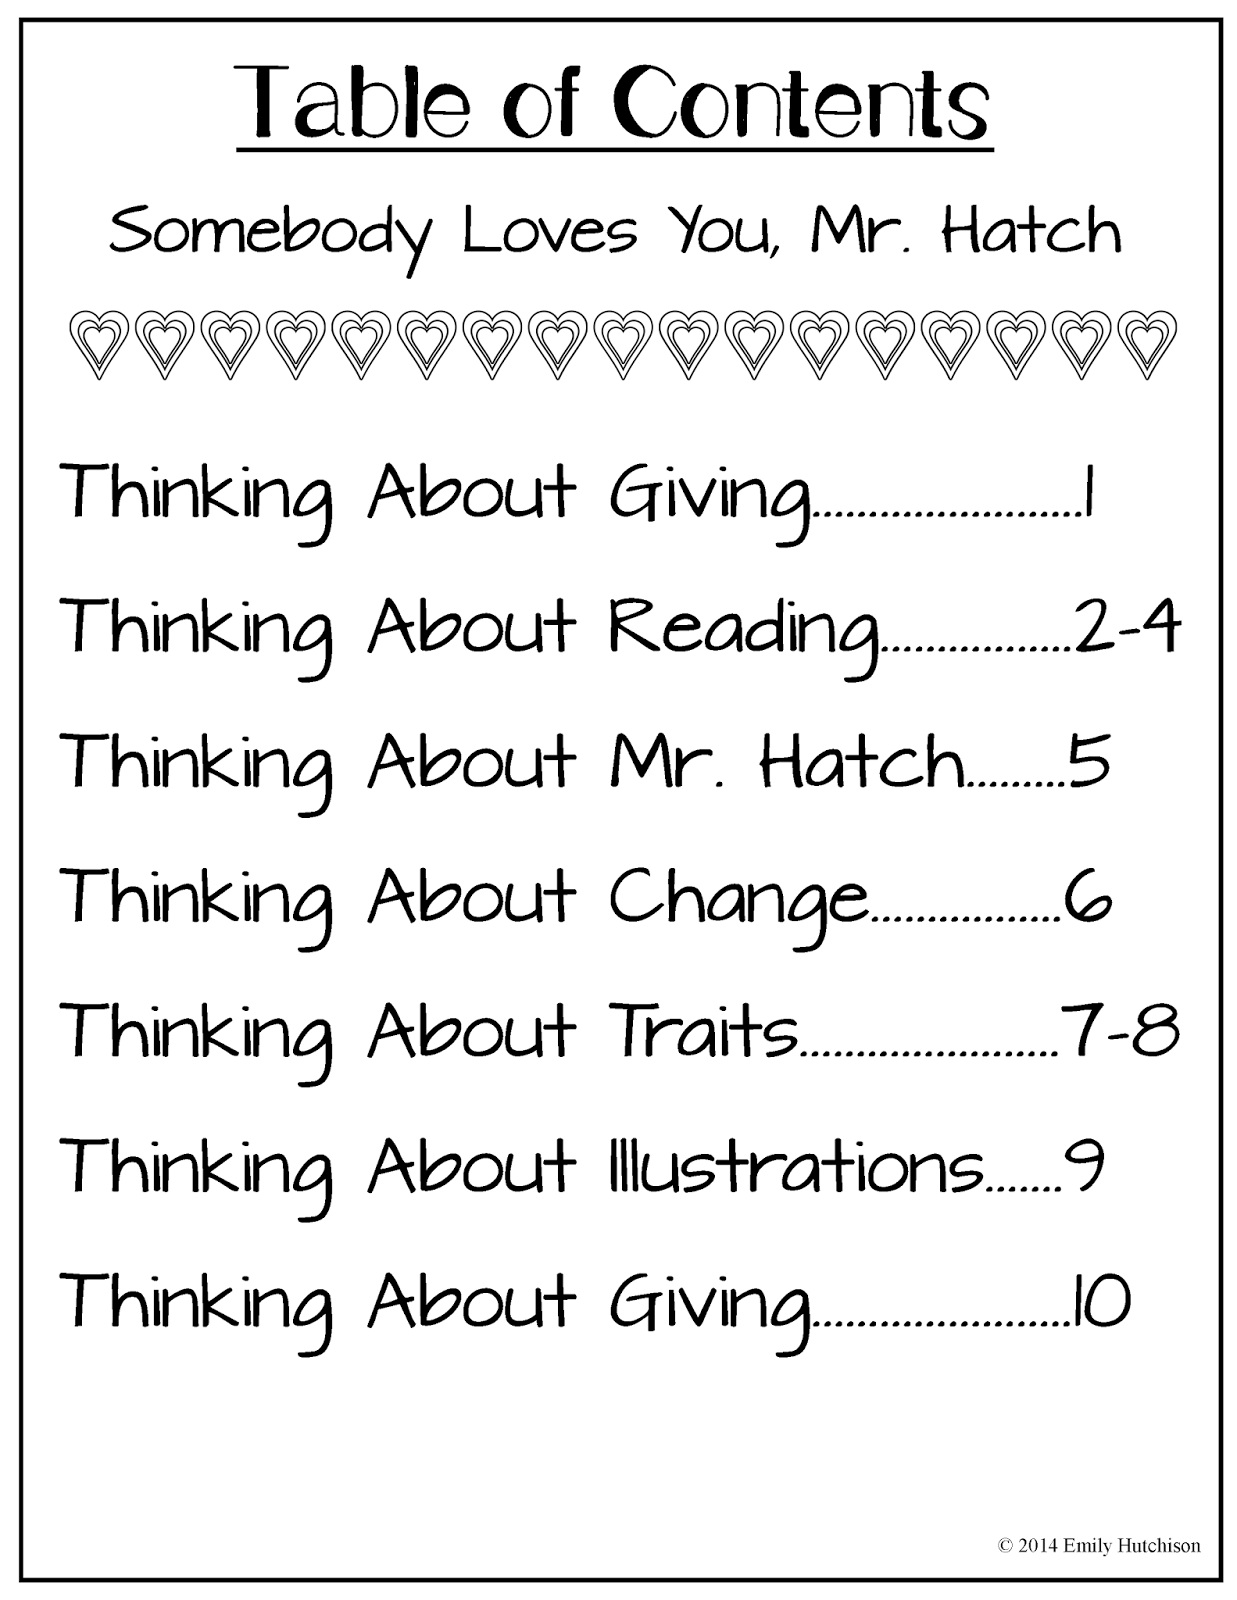 http://www.teacherspayteachers.com/Product/Thinking-About-Somebody-Loves-You-Mr-Hatch-1068453